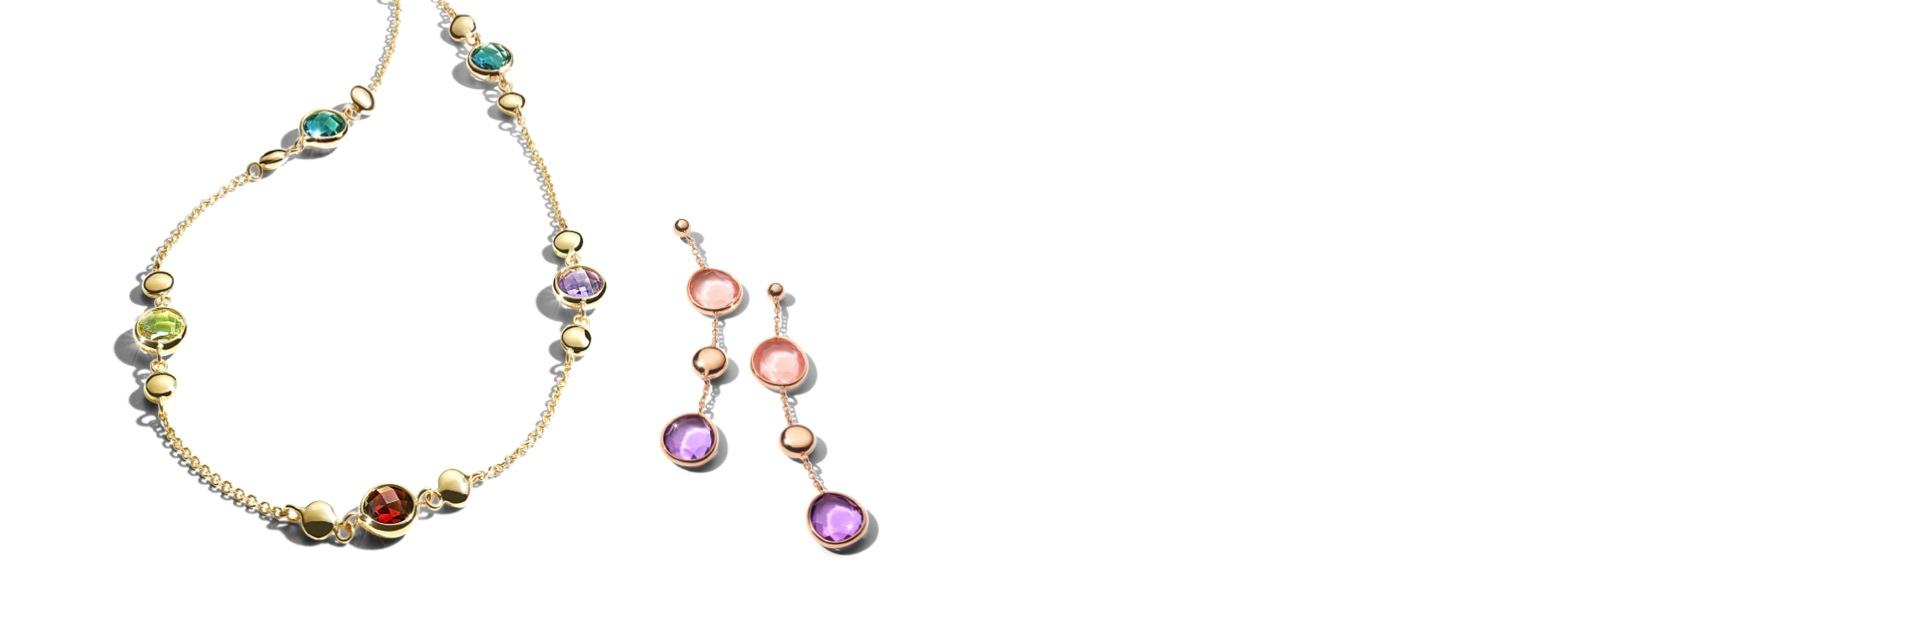 New Bel Colore multi-gemstone necklace in yellow gold and rorse gold multi-gemstone earrings.